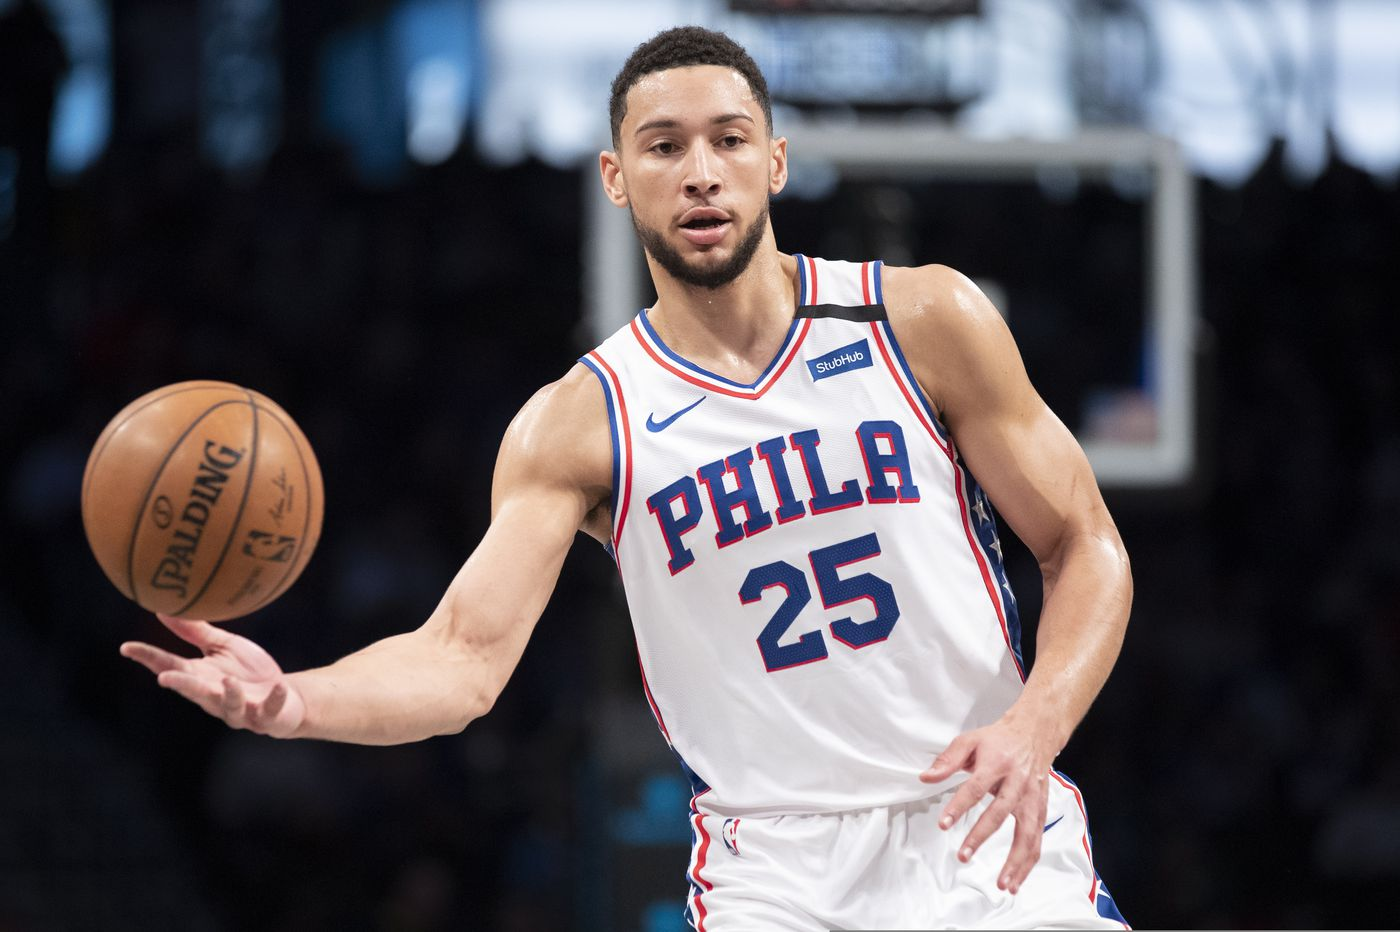 Ben Simmons shows no hesitation in stellar play during Sixers' 90-83 win over Memphis Grizzlies